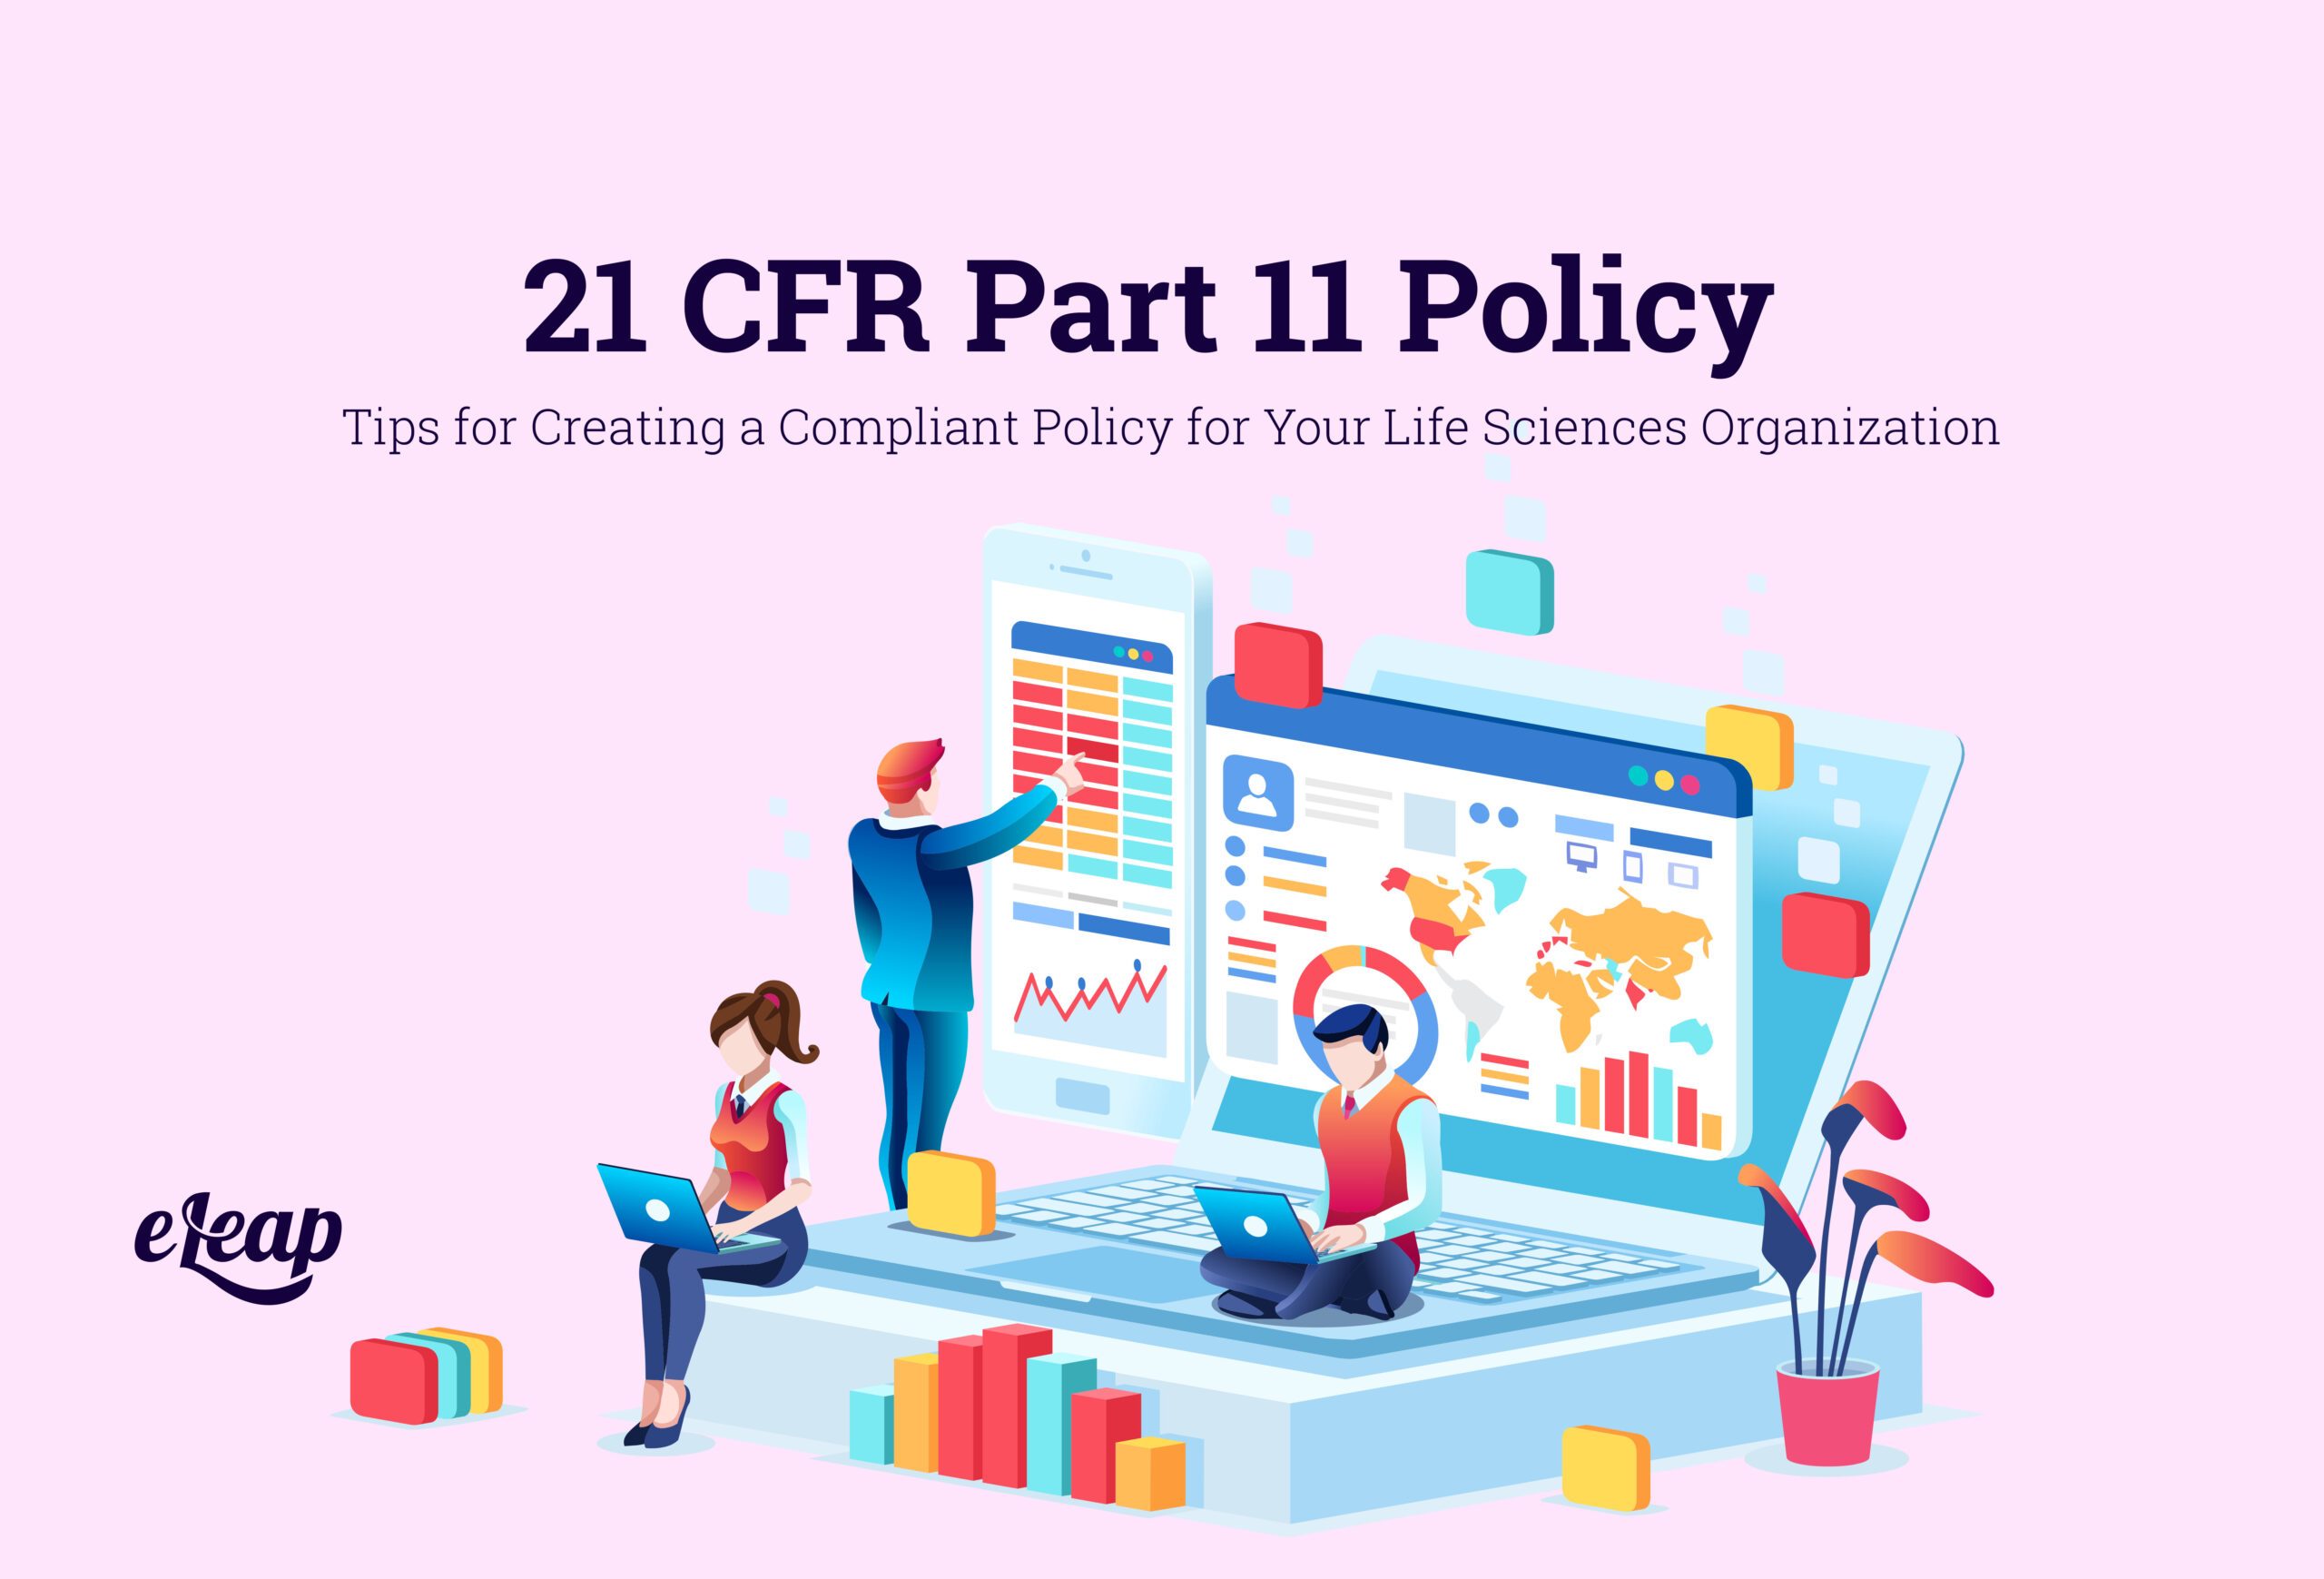 21 CFR Part 11 Policy